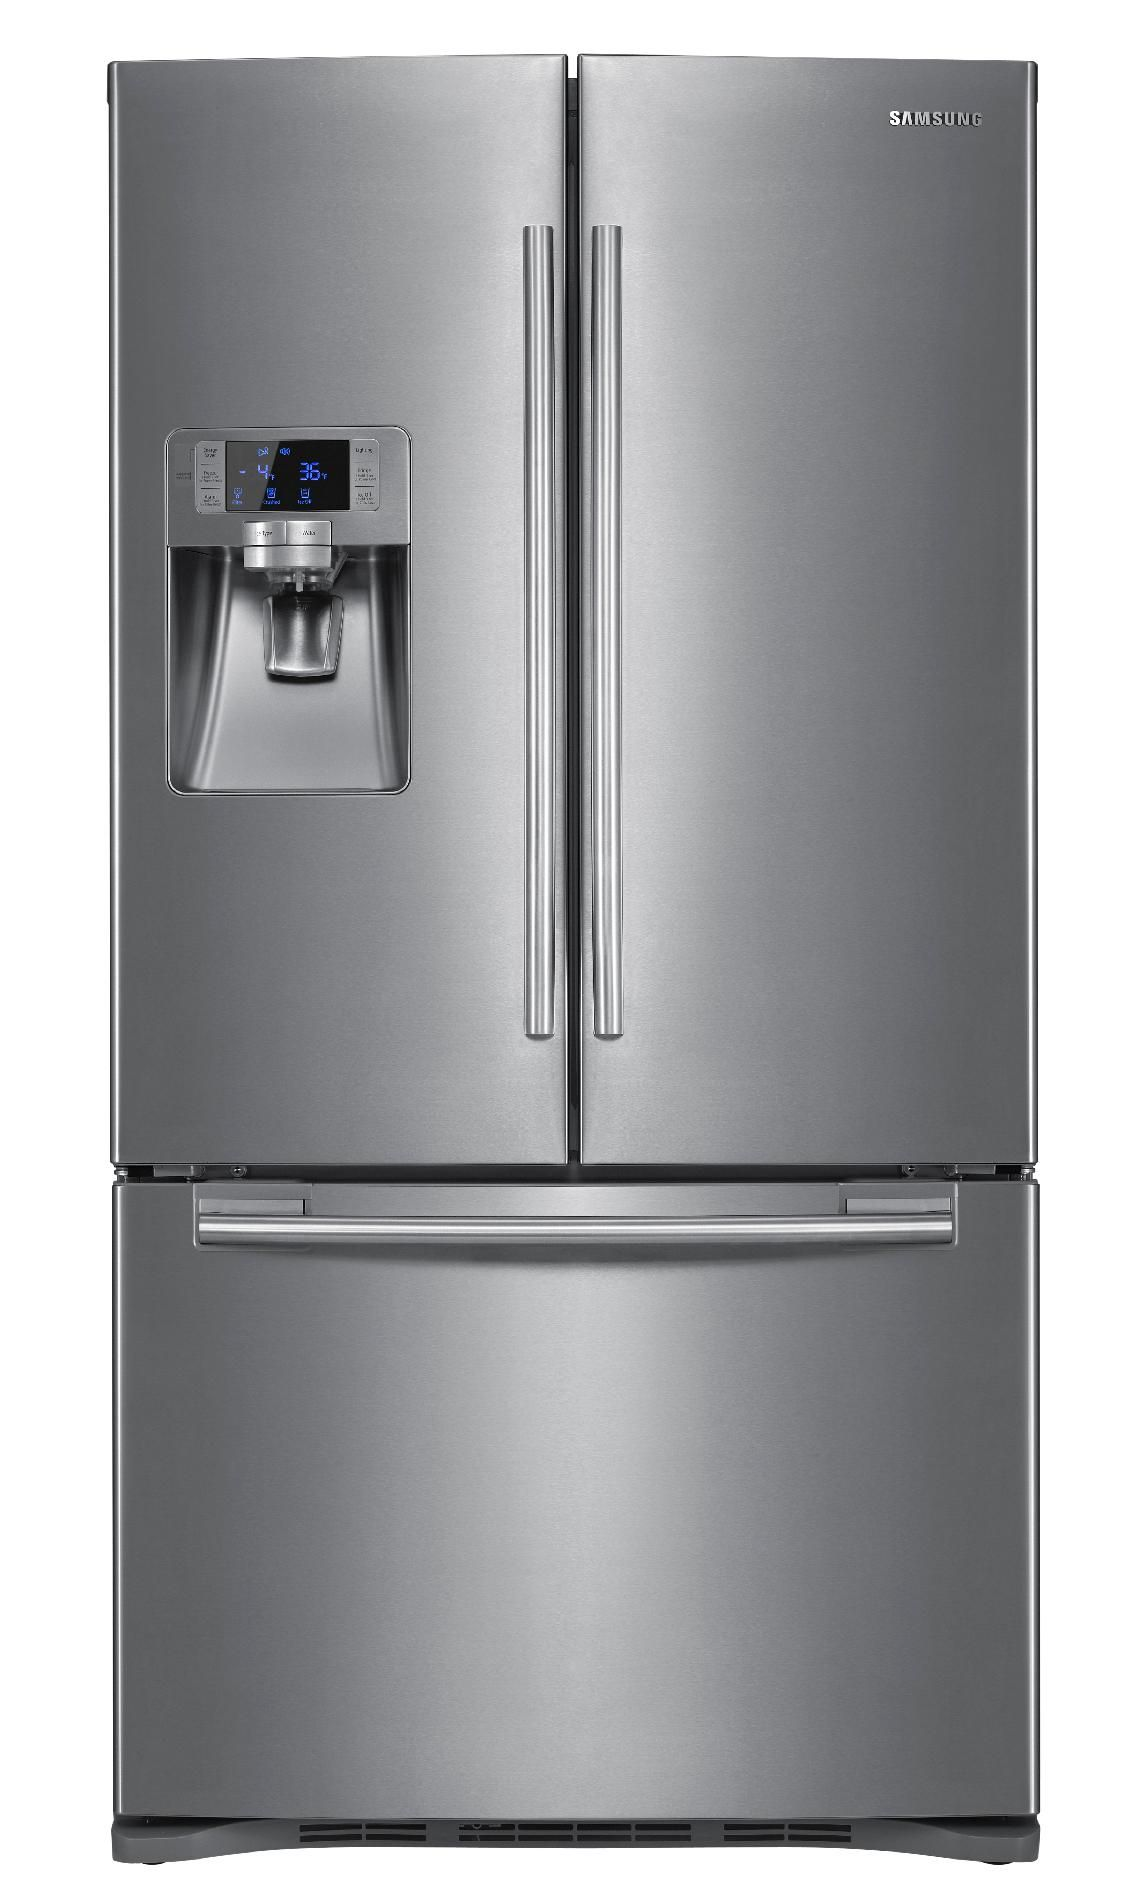 Charmant Samsung   RFG238AARS   23 Cu. Ft. Counter Depth French Door ...